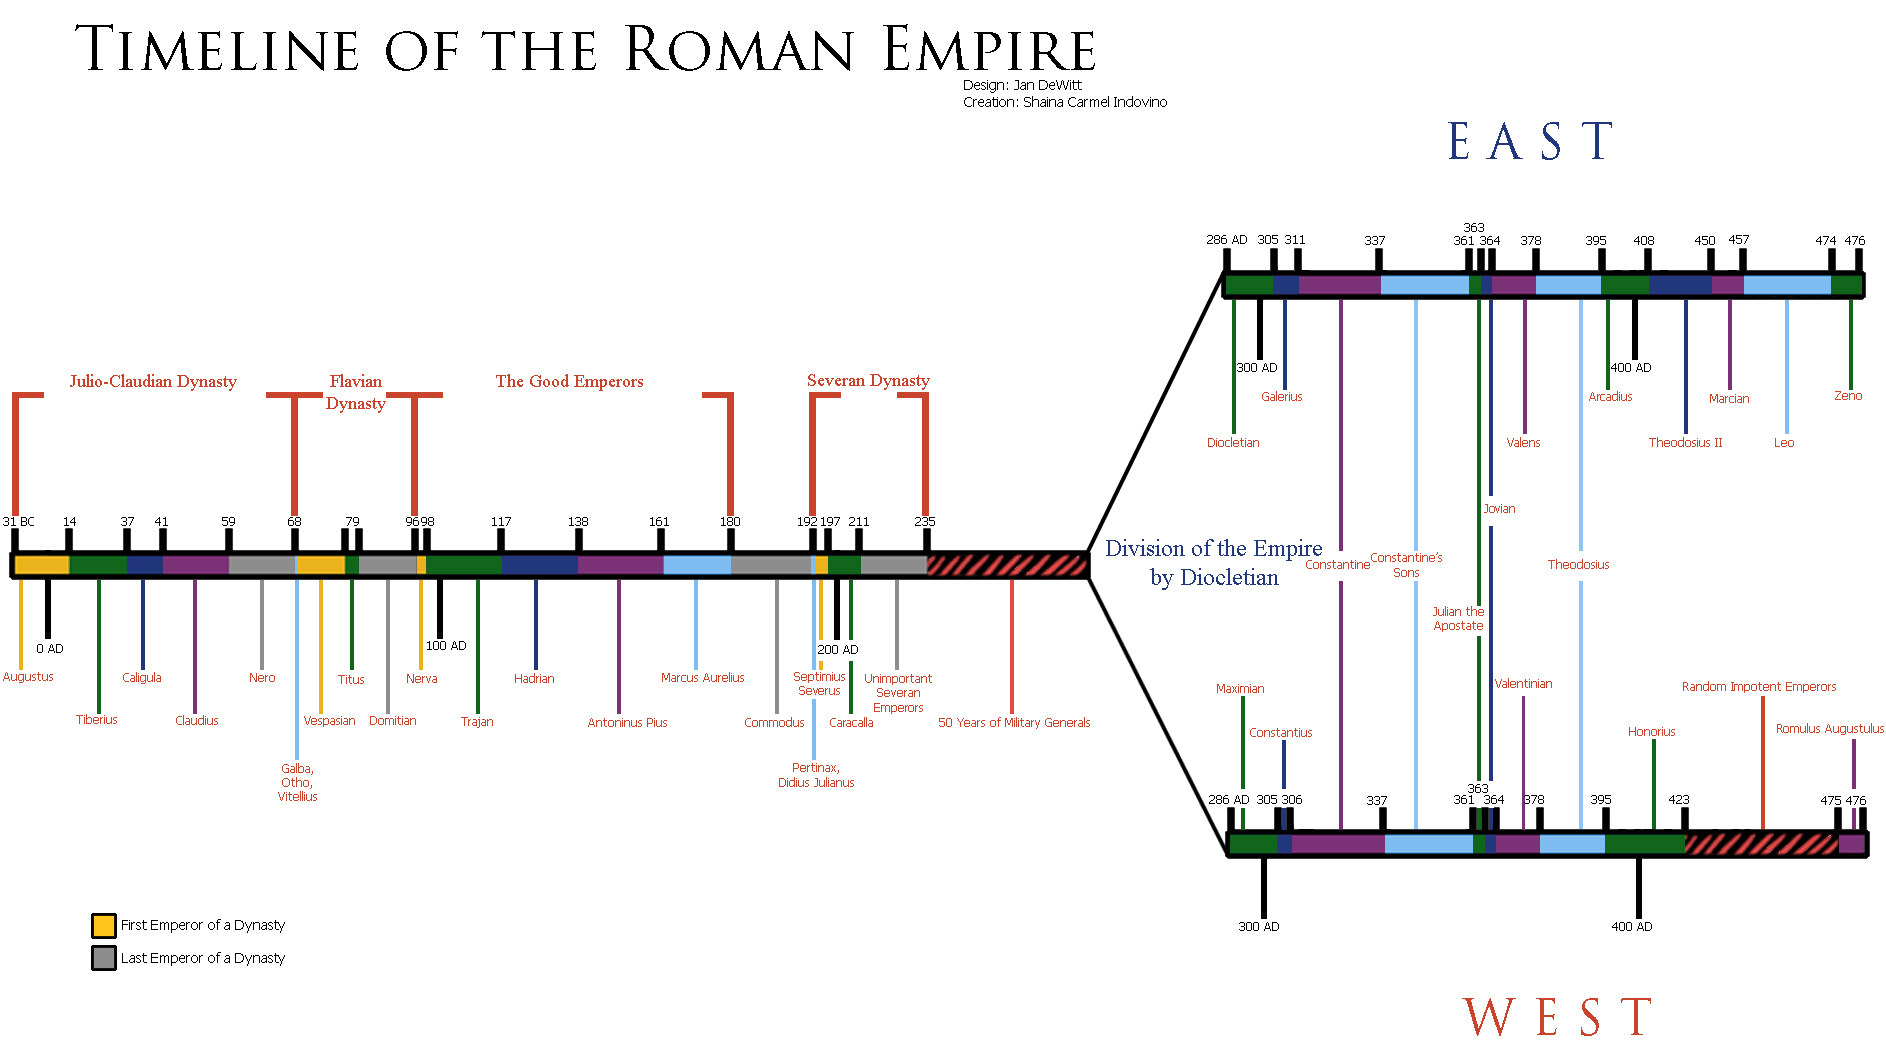 decline of the holy roman empire See the history of the holy roman empire from its birth 962 to the fall of the empire in 1806.